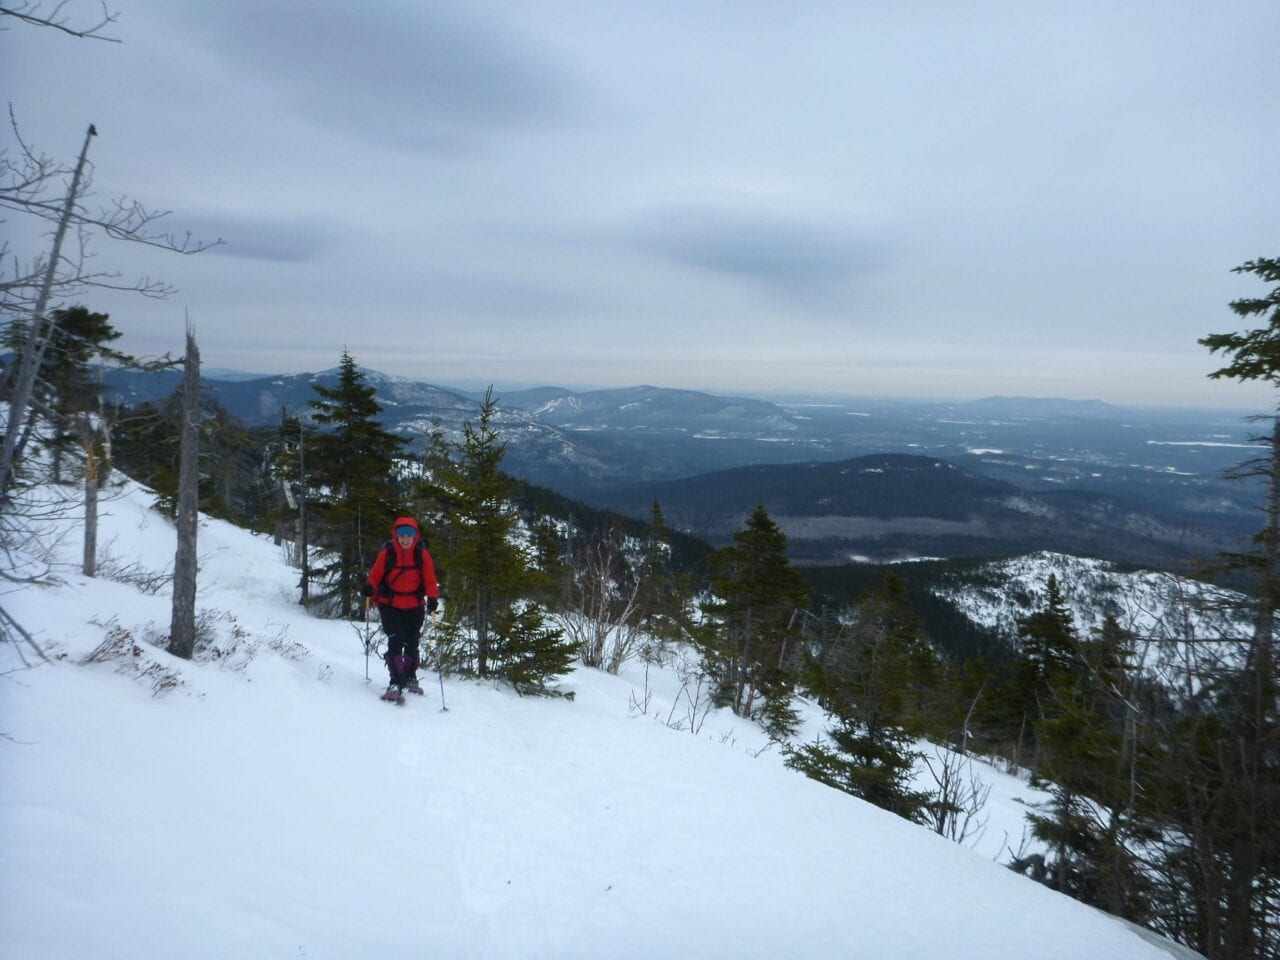 A hiker climbs up a snowy slope with a valley visible in the background.